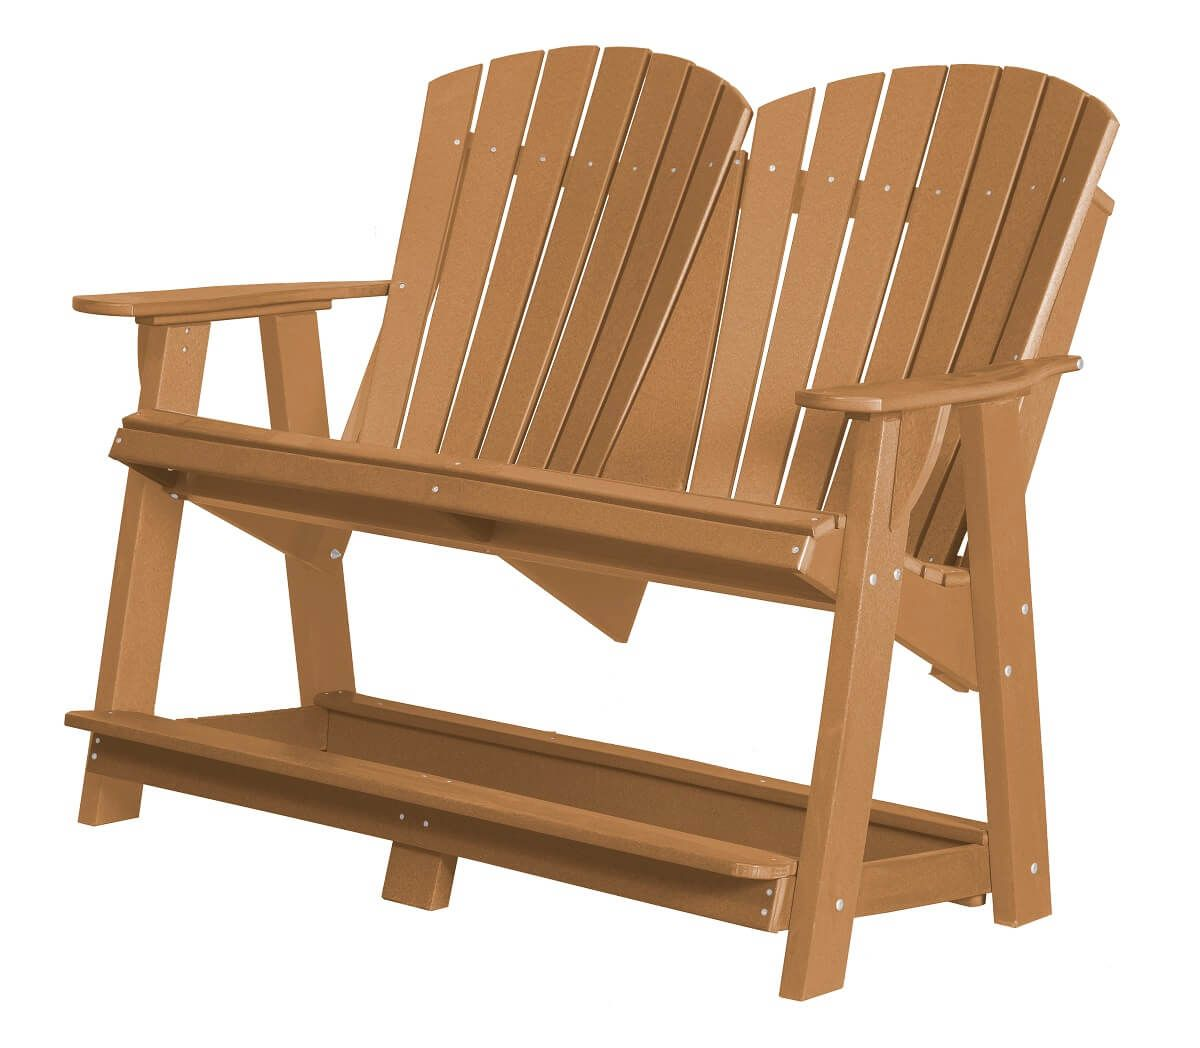 Cedar Sidra Double High Adirondack